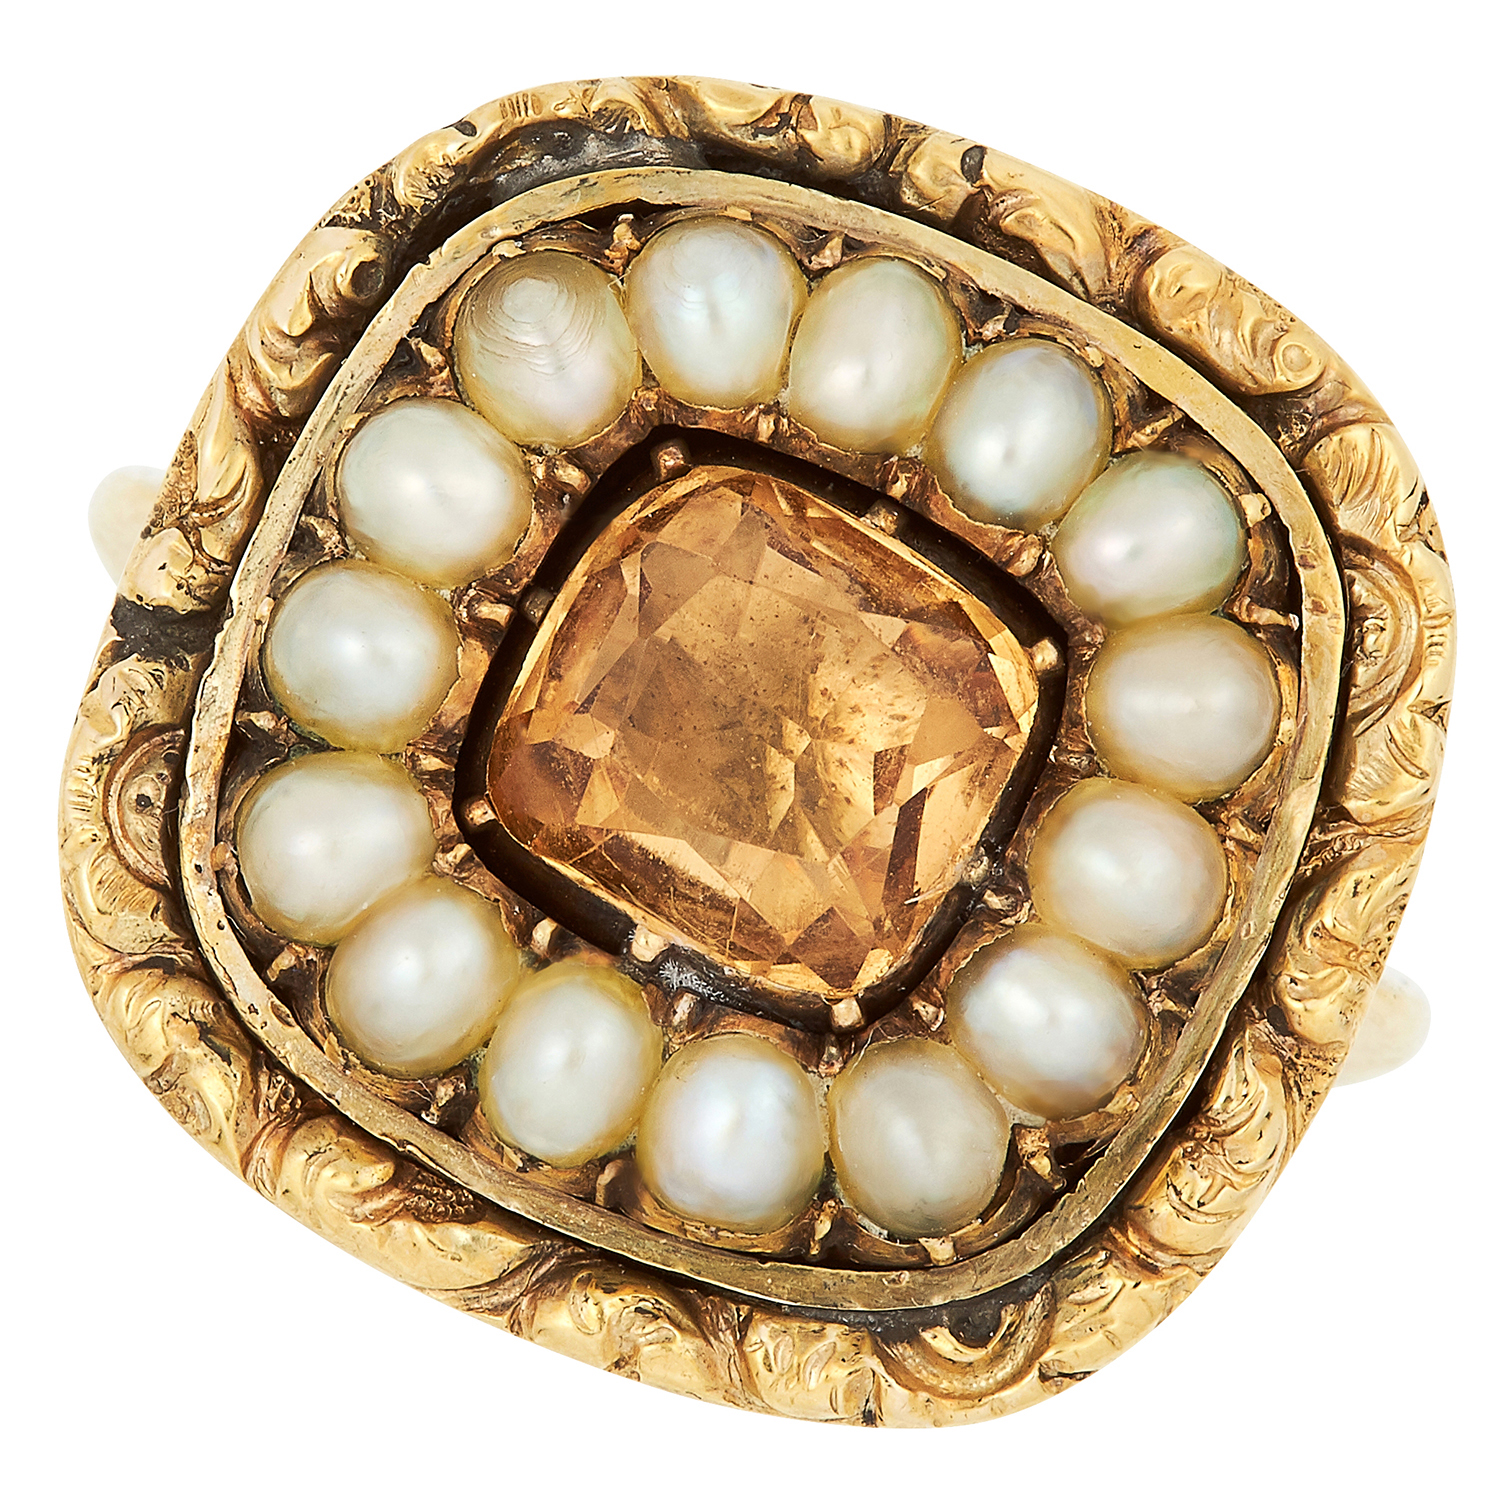 ANTIQUE IMPERIAL TOPAZ AND PEARL RING set with a cushion cut imperial topaz in a border of pearls,